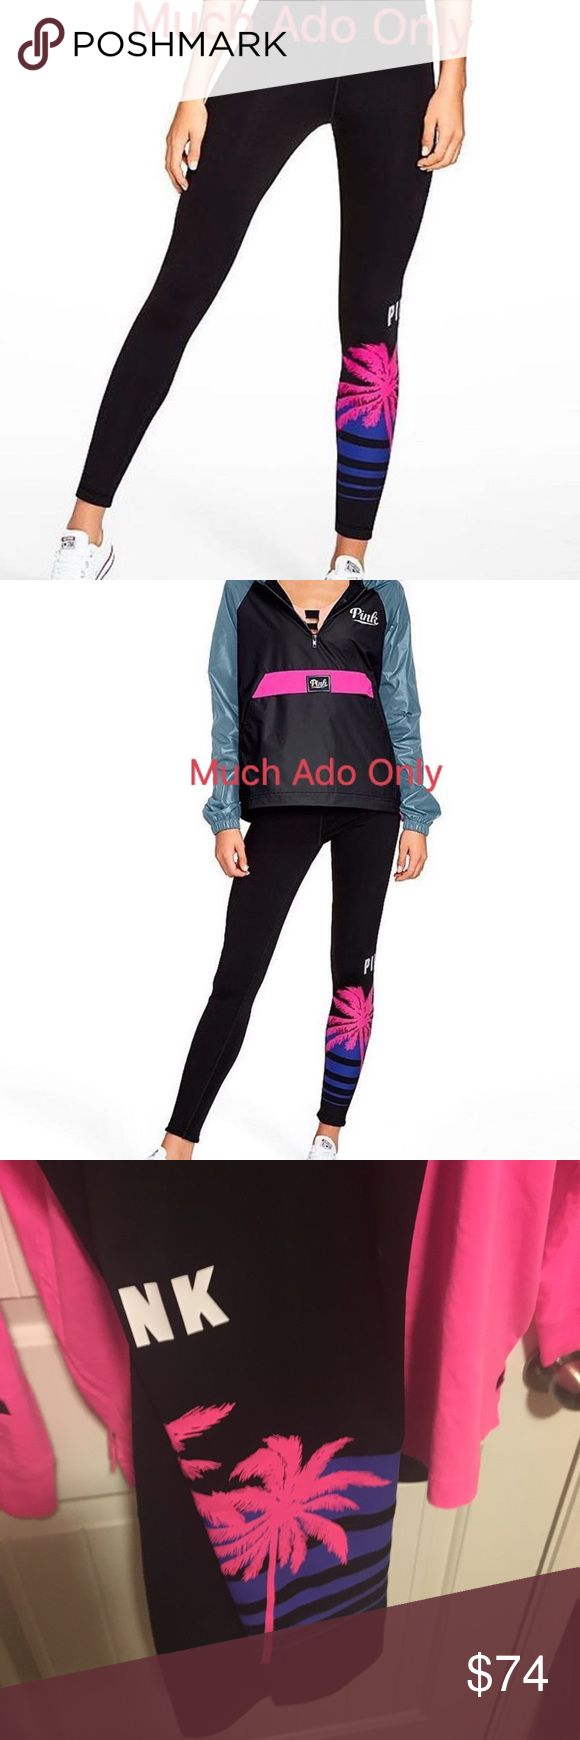 """NWT VS PINK High Waist Ultimate Leggings Only L Brand New Spring Break 2017 Collection!  PINK Ultimate Leggings in Palm Tree Print Large ❌Freebie with purchase❌  Super smooth and fit to flatter, this Ultimate Legging features a high waist and sporty piecing details, plus quick-dry 4-way stretch that wicks away sweat and is breathable during workouts.   High waist Premium quick-dry 4-way stretch fabric Available with faux leather and mesh piecing details 28"""" inseam Imported…"""